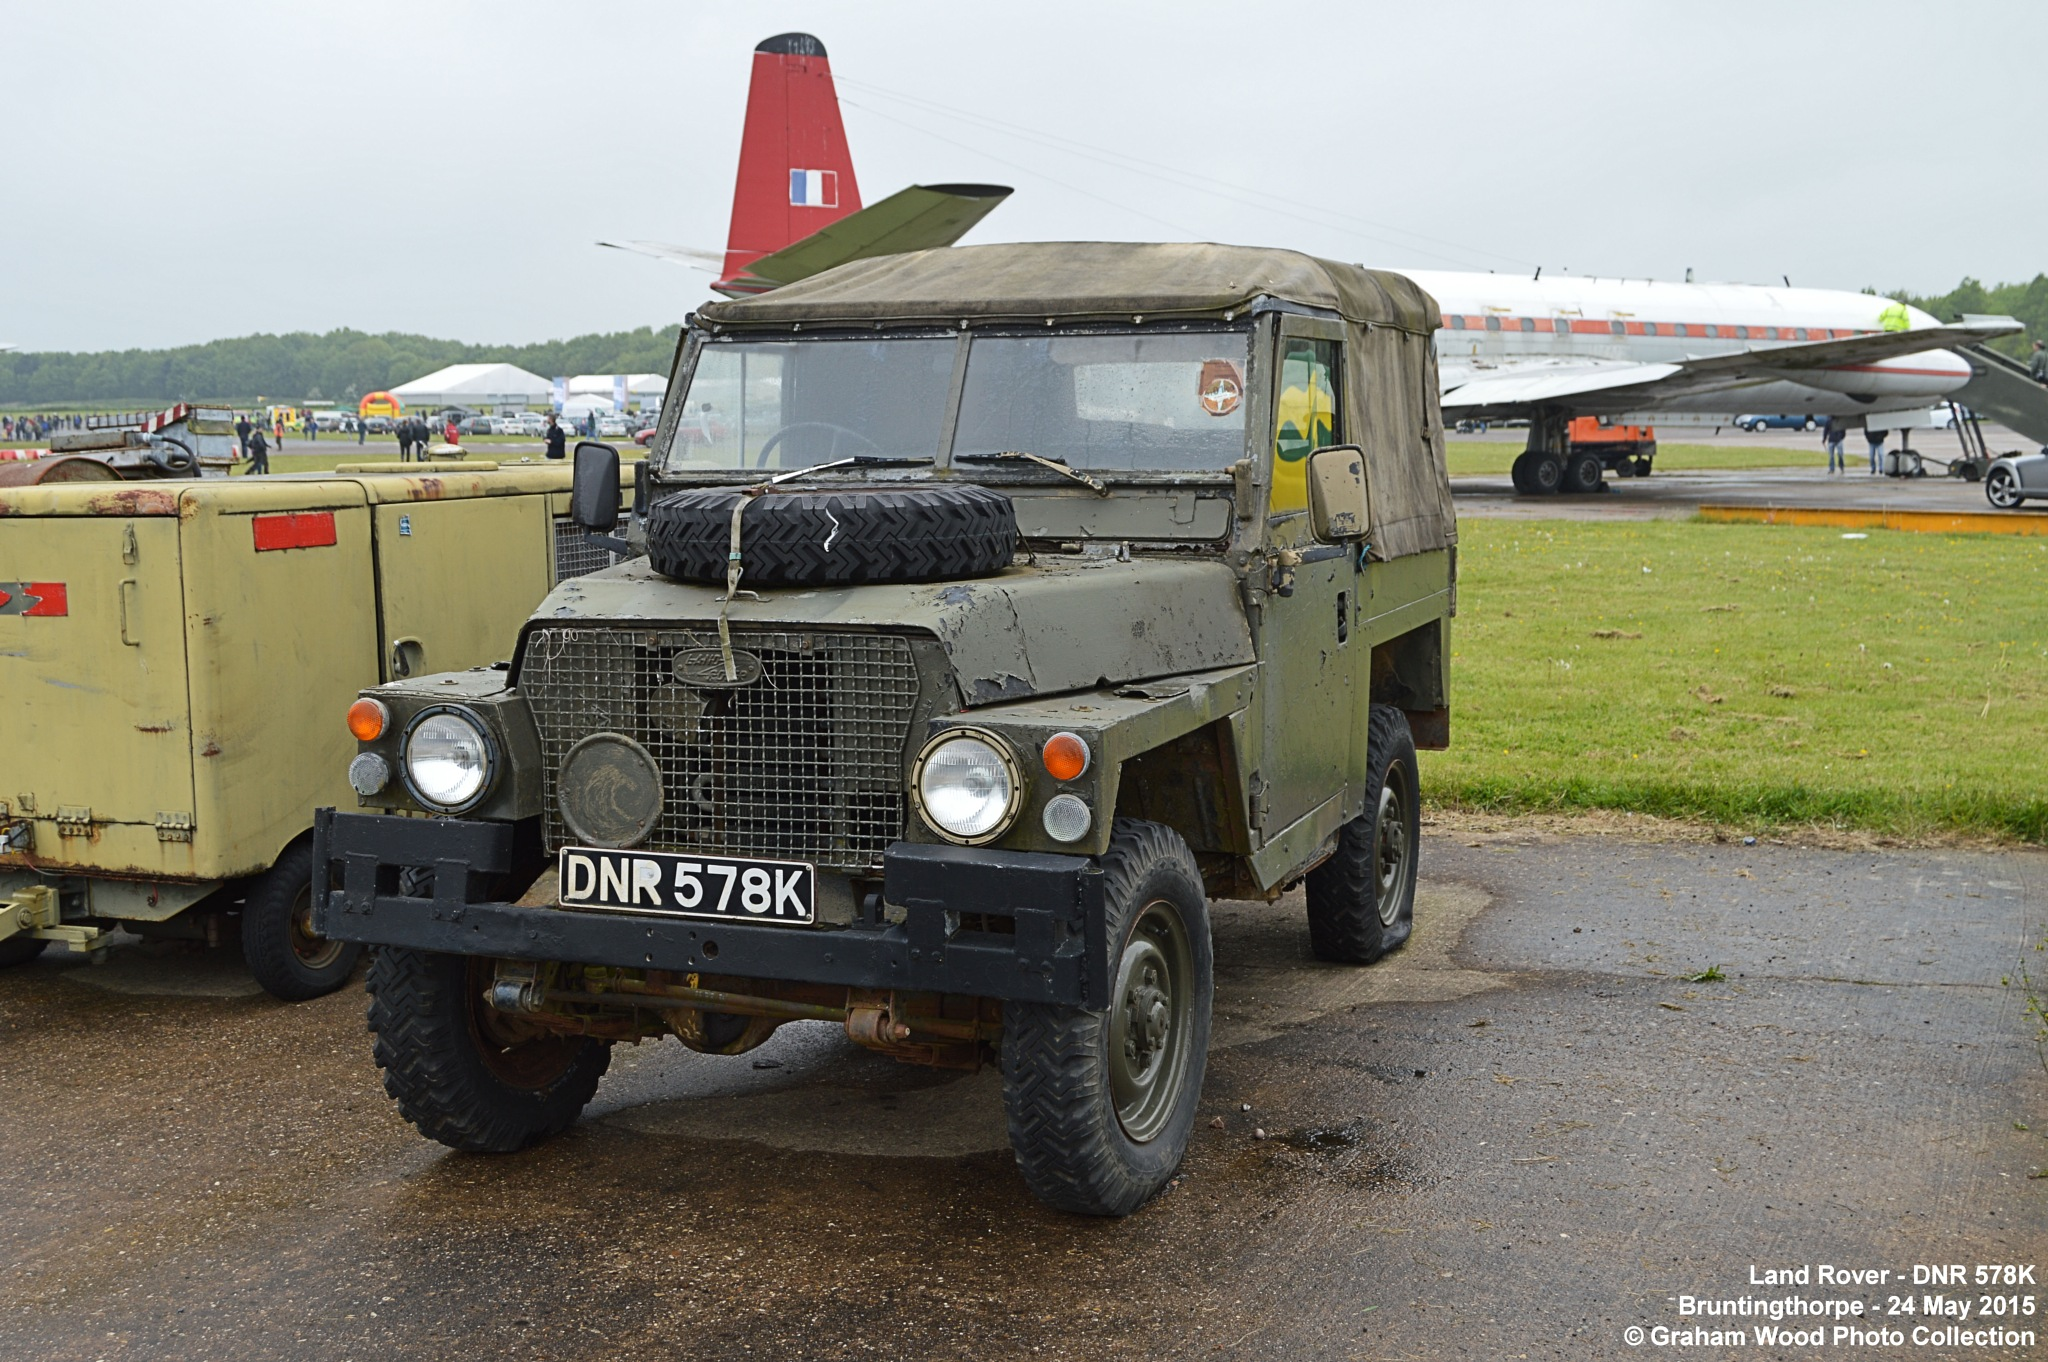 Land Rover - DNR 578K by Graham Wood Photo Collection